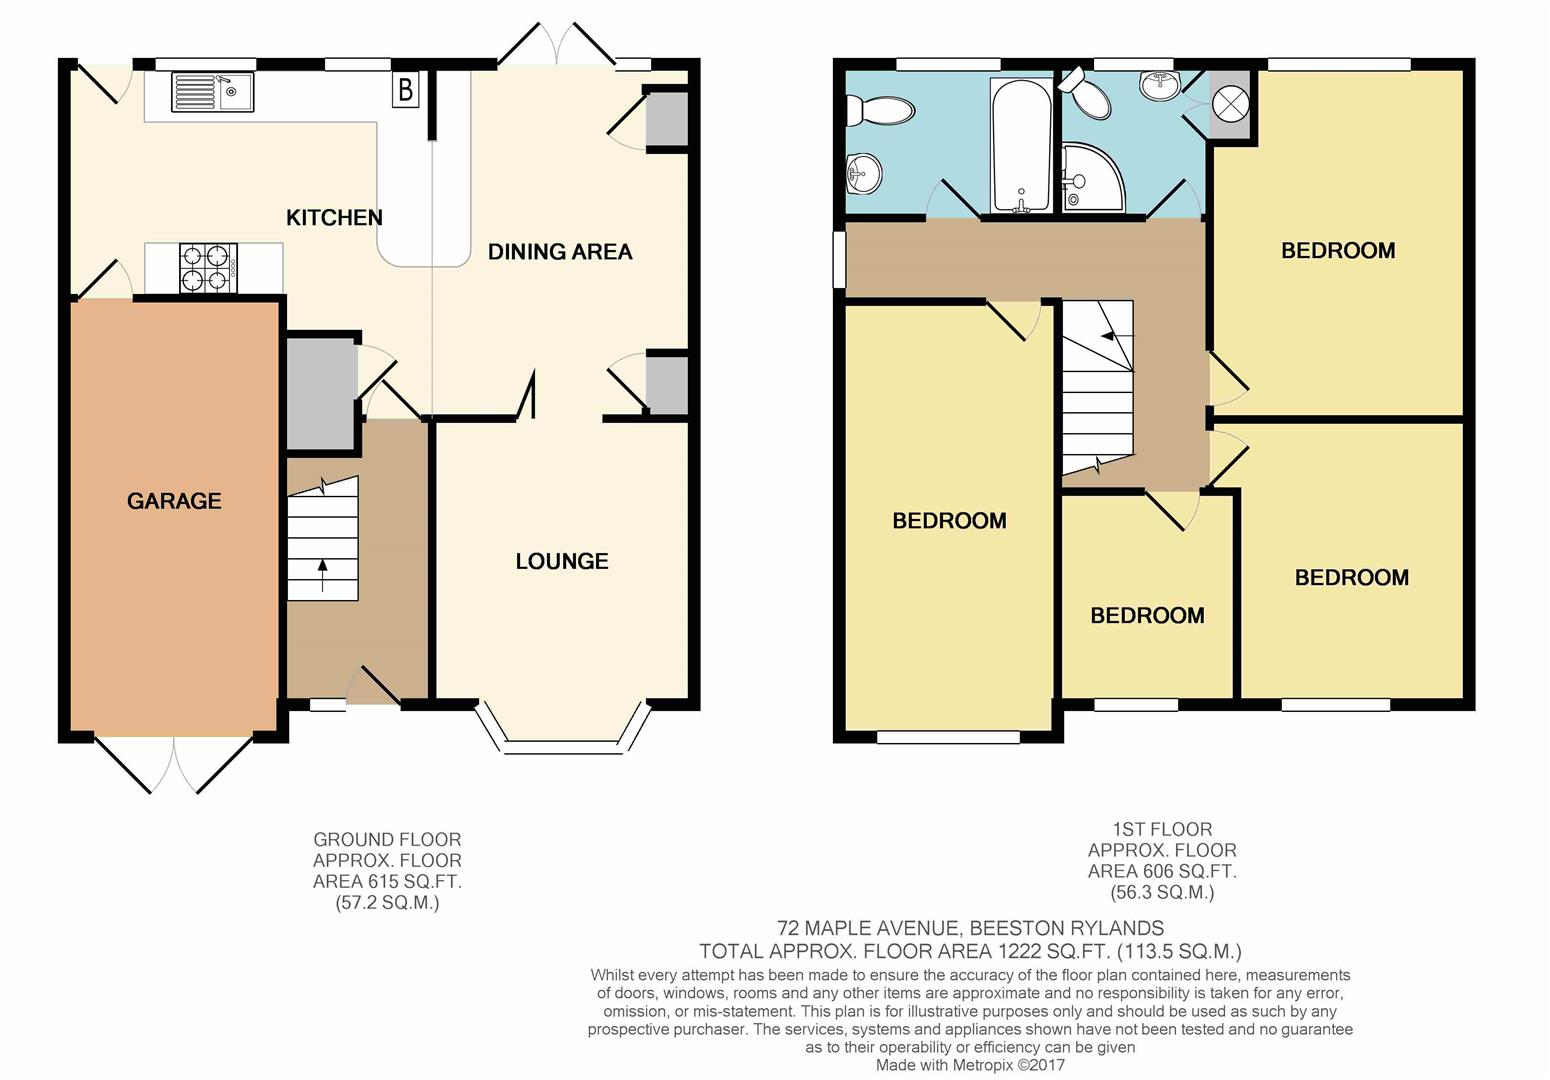 Maple avenue beeston nottingham ng9 4 bedroom semi detached house for sale 44900040 for Food bar beeston